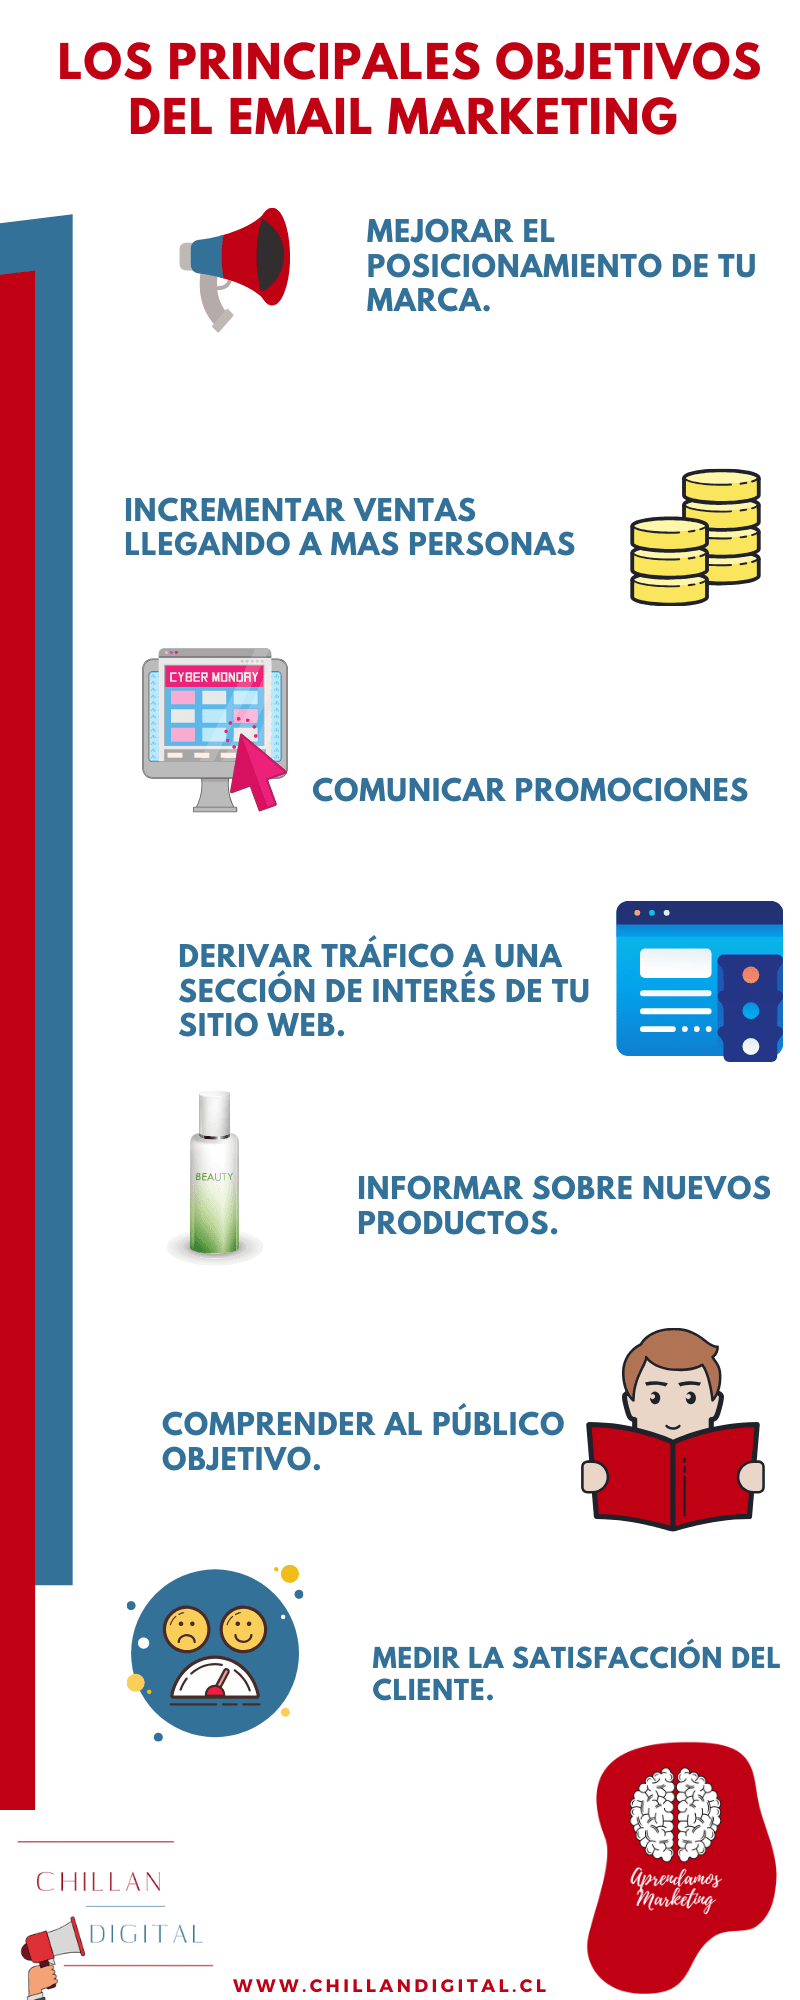 Objetivos del Email Marketing